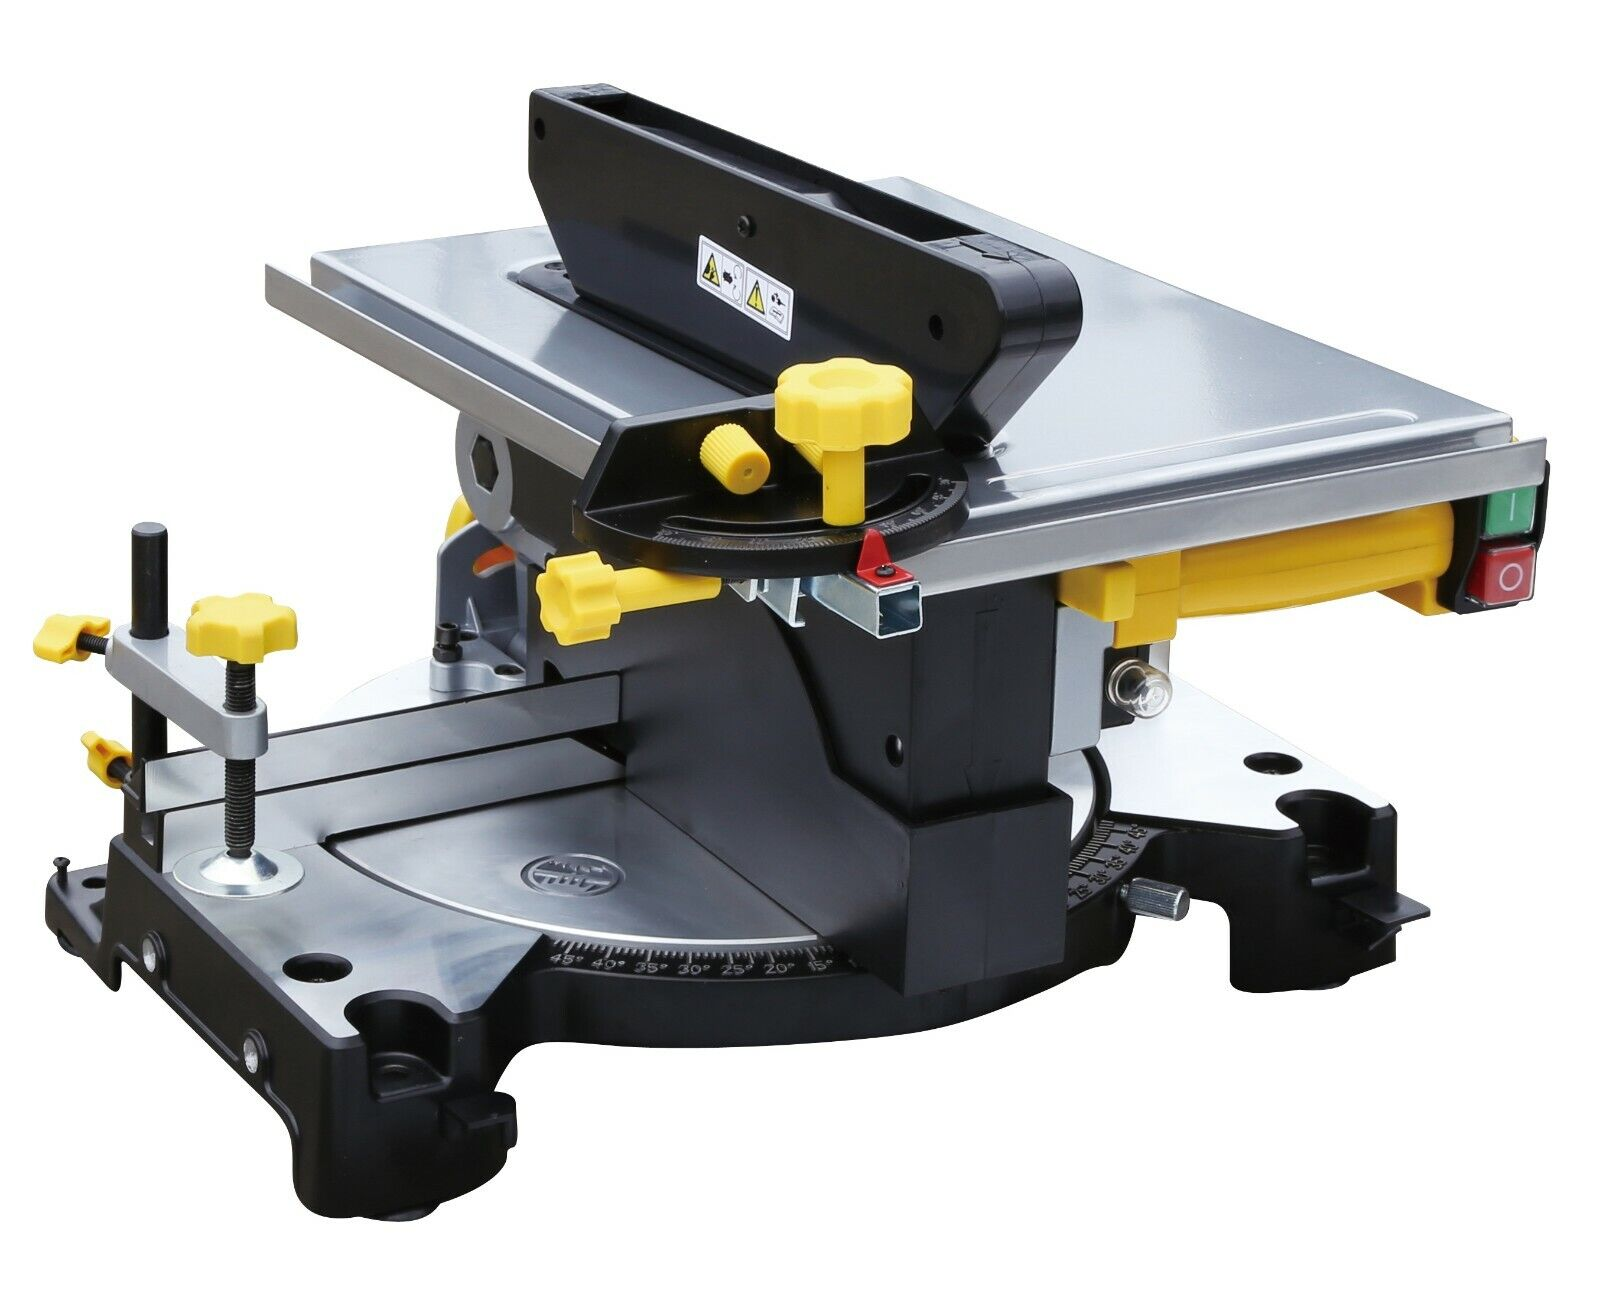 Details About Pro Mitre Saw Table Combo Electric Bench Drop Extension 210mm 2 In 1